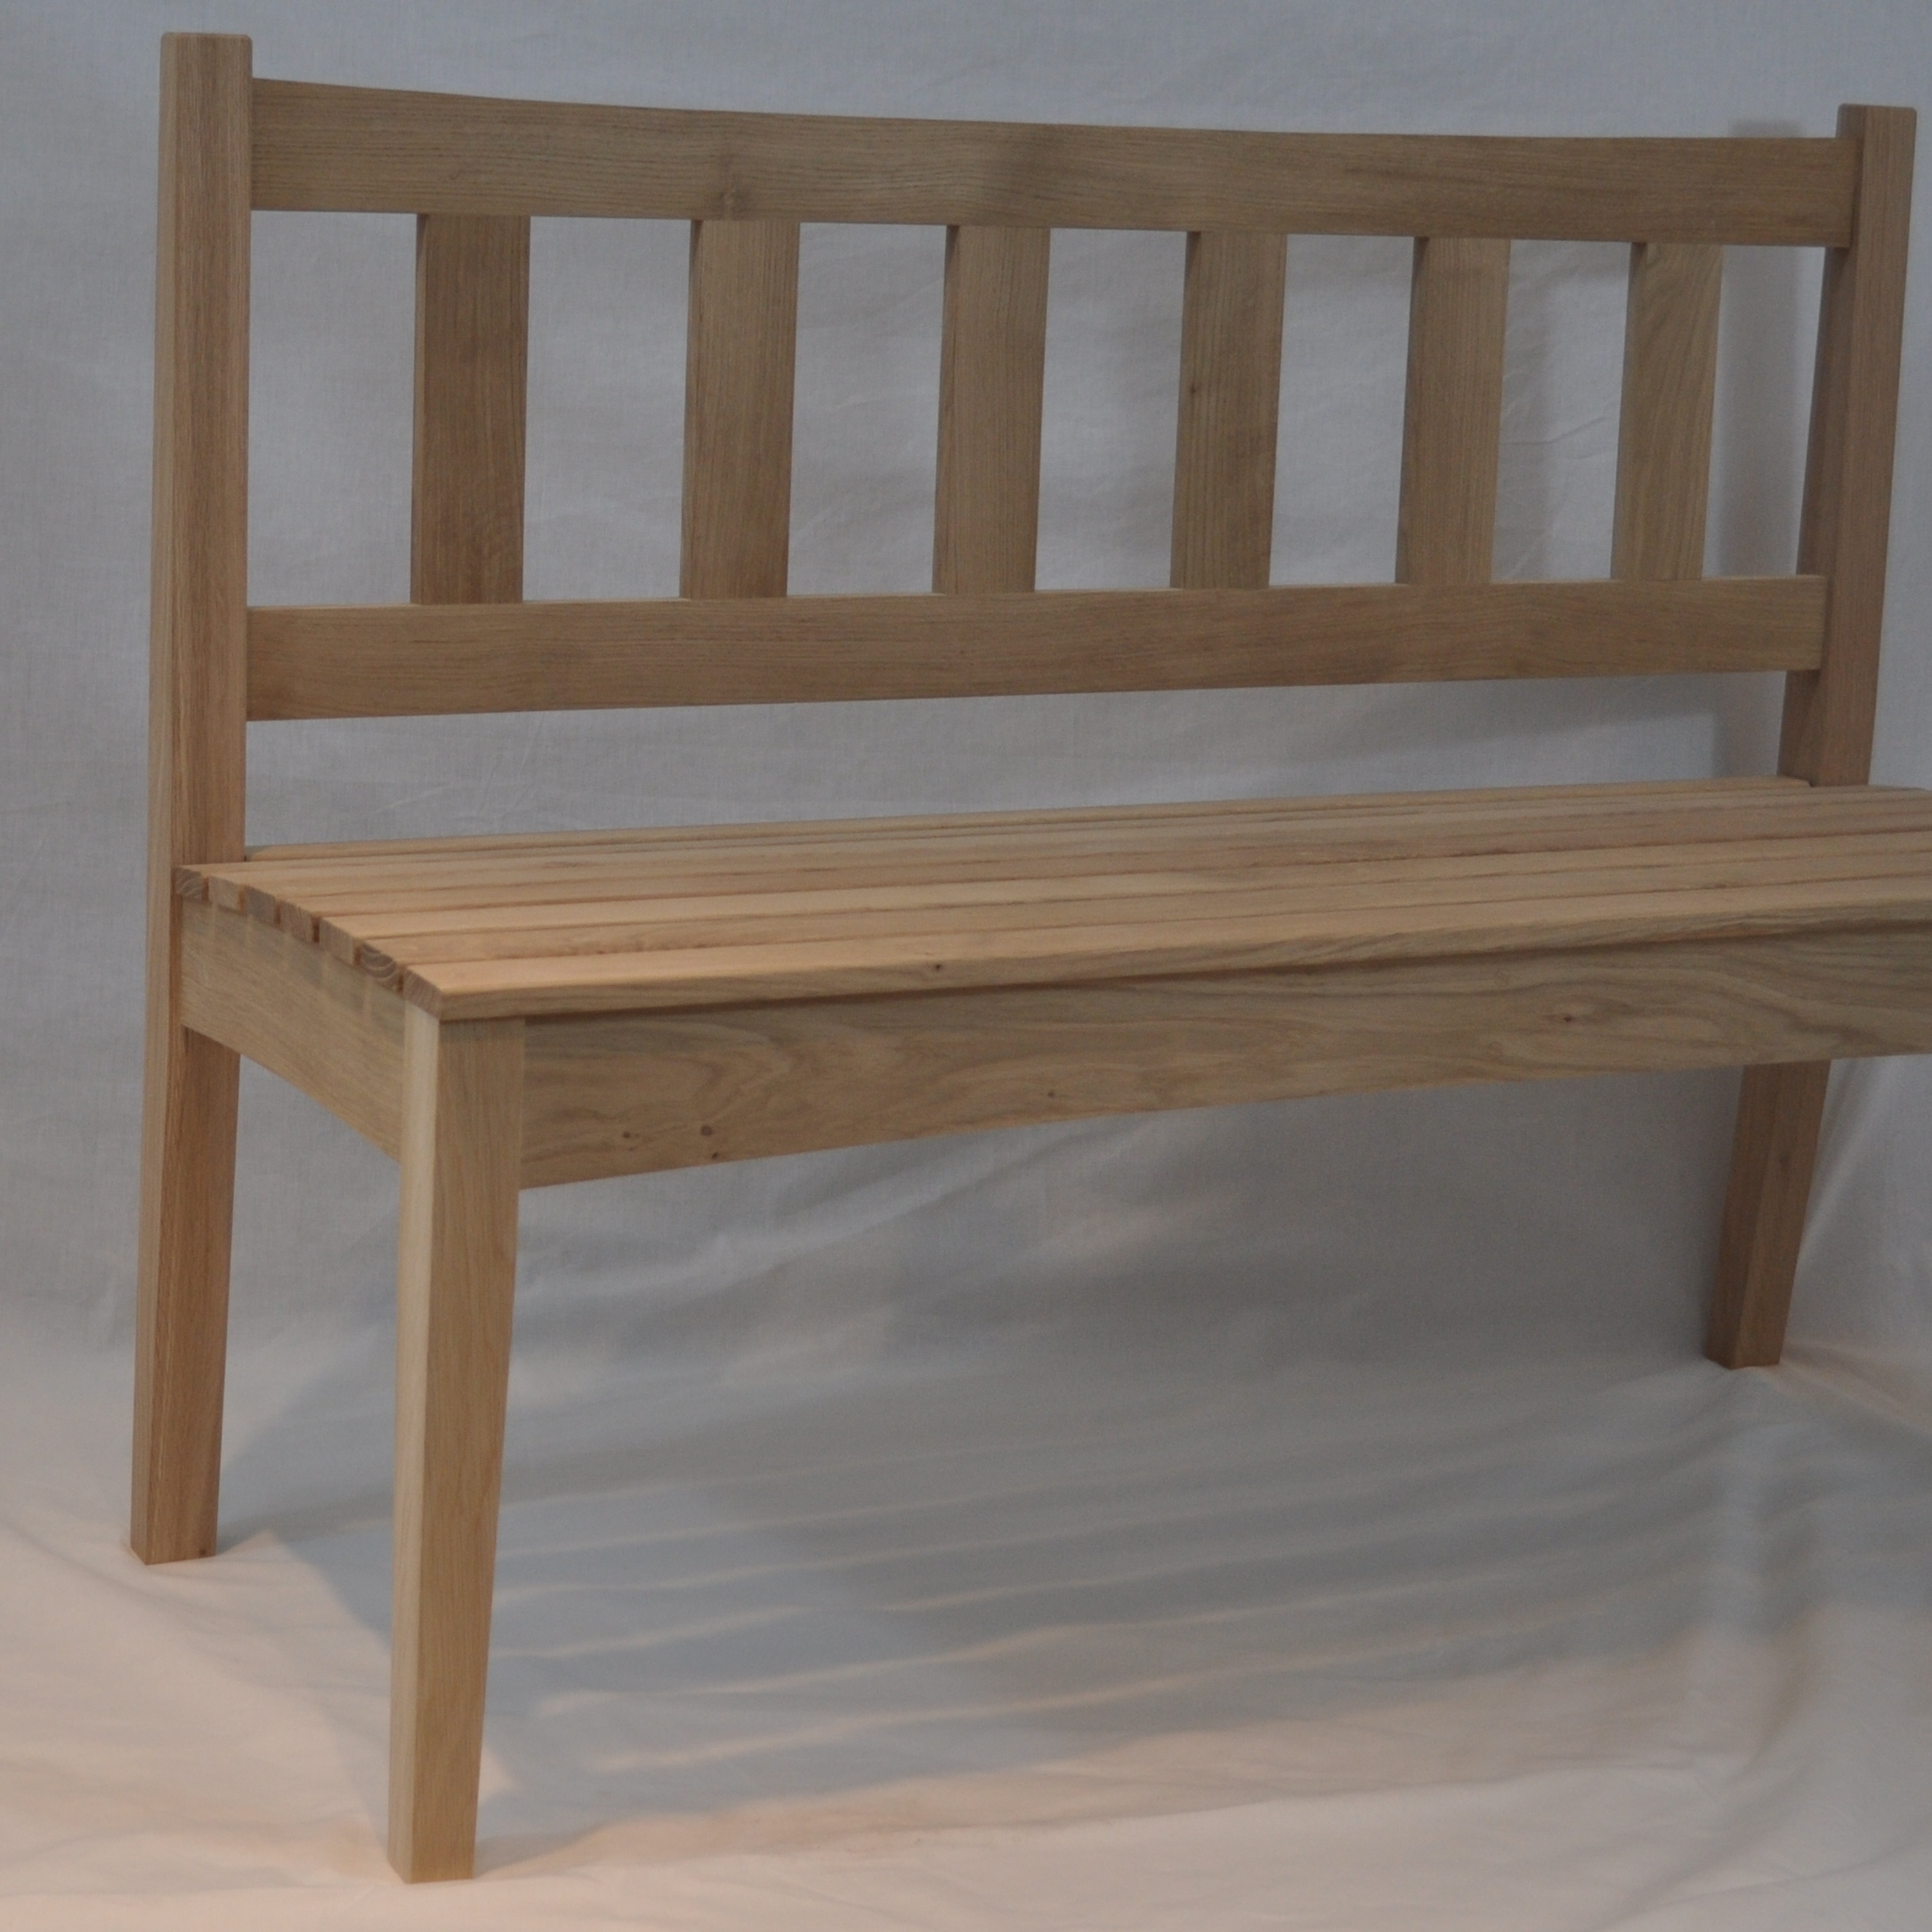 Copy of Tom's Bench